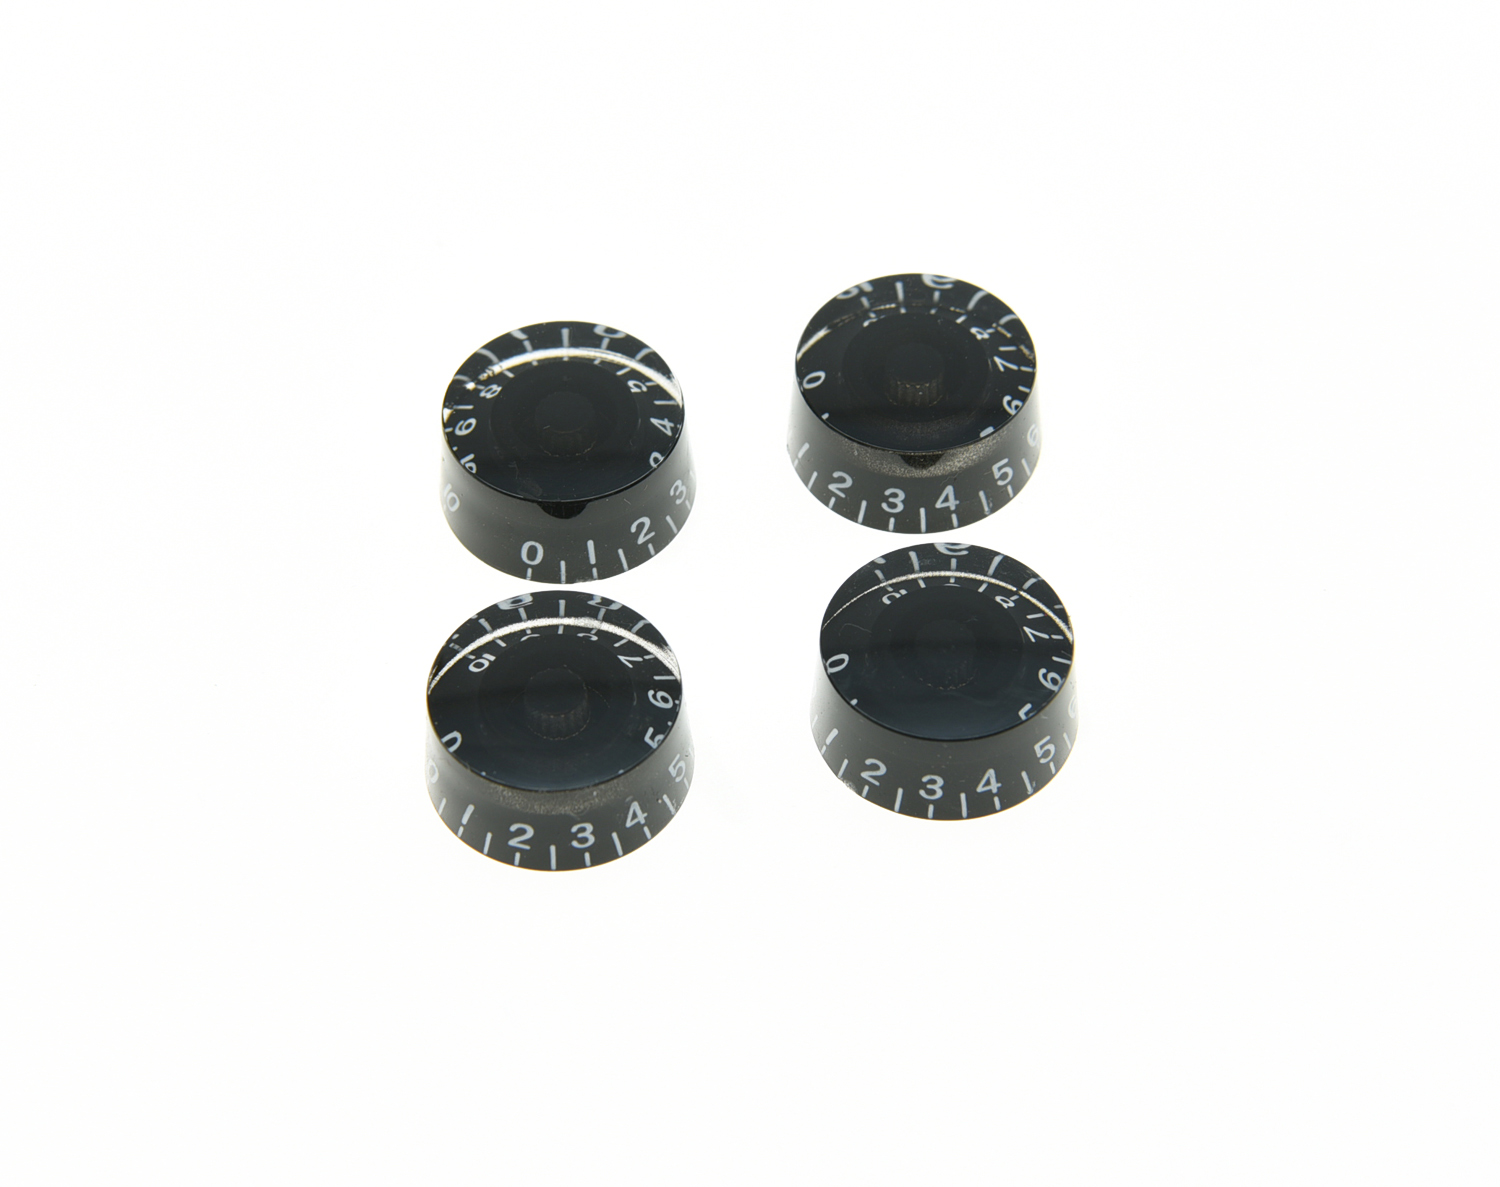 KAISH 4x Black LP Guitar Knobs, Control Knobs Speed Knobs phil collins singles 4 lp